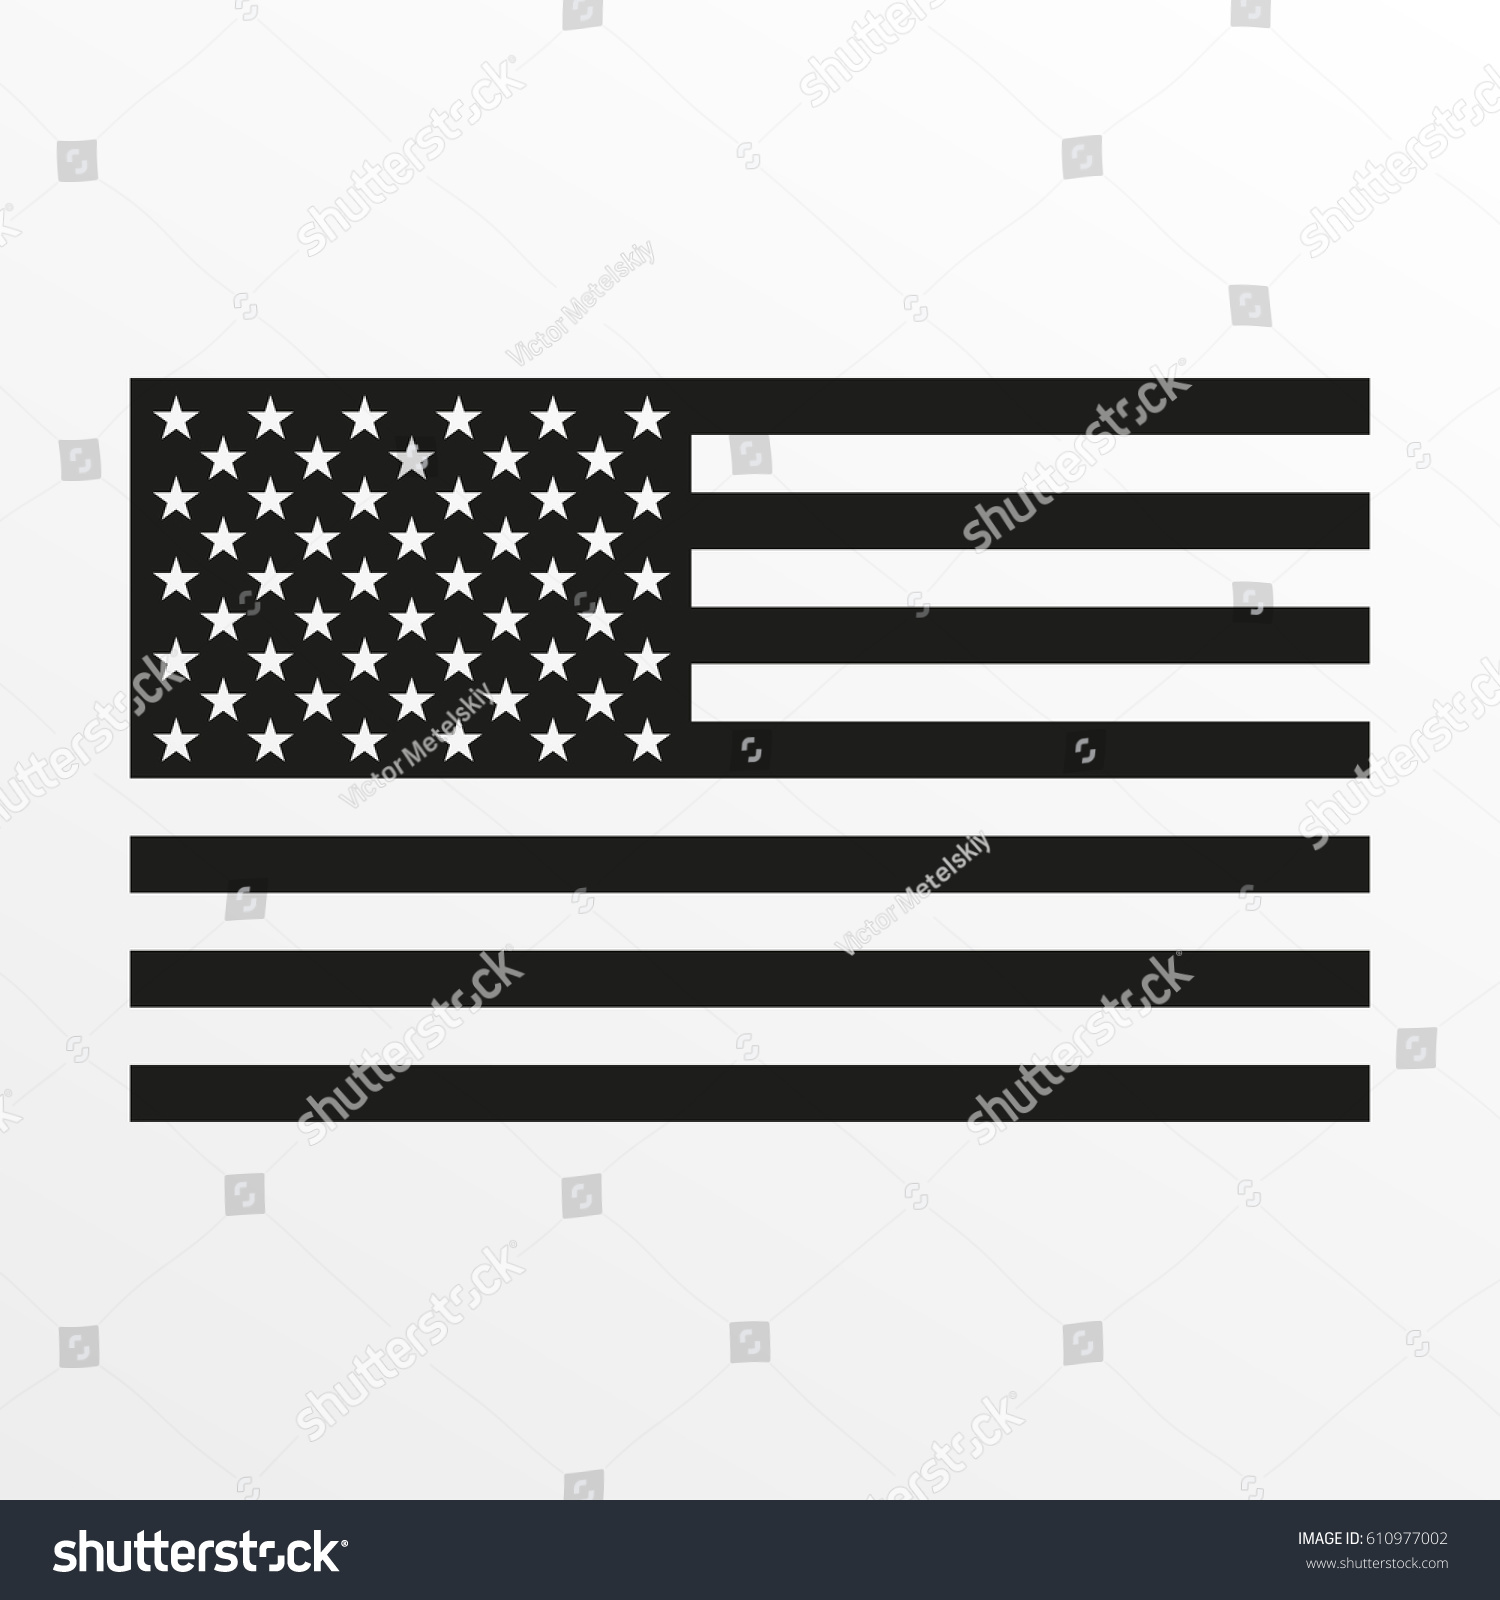 USA flag icon. Black and white United States of America national symbol. Vector illustration. #610977002